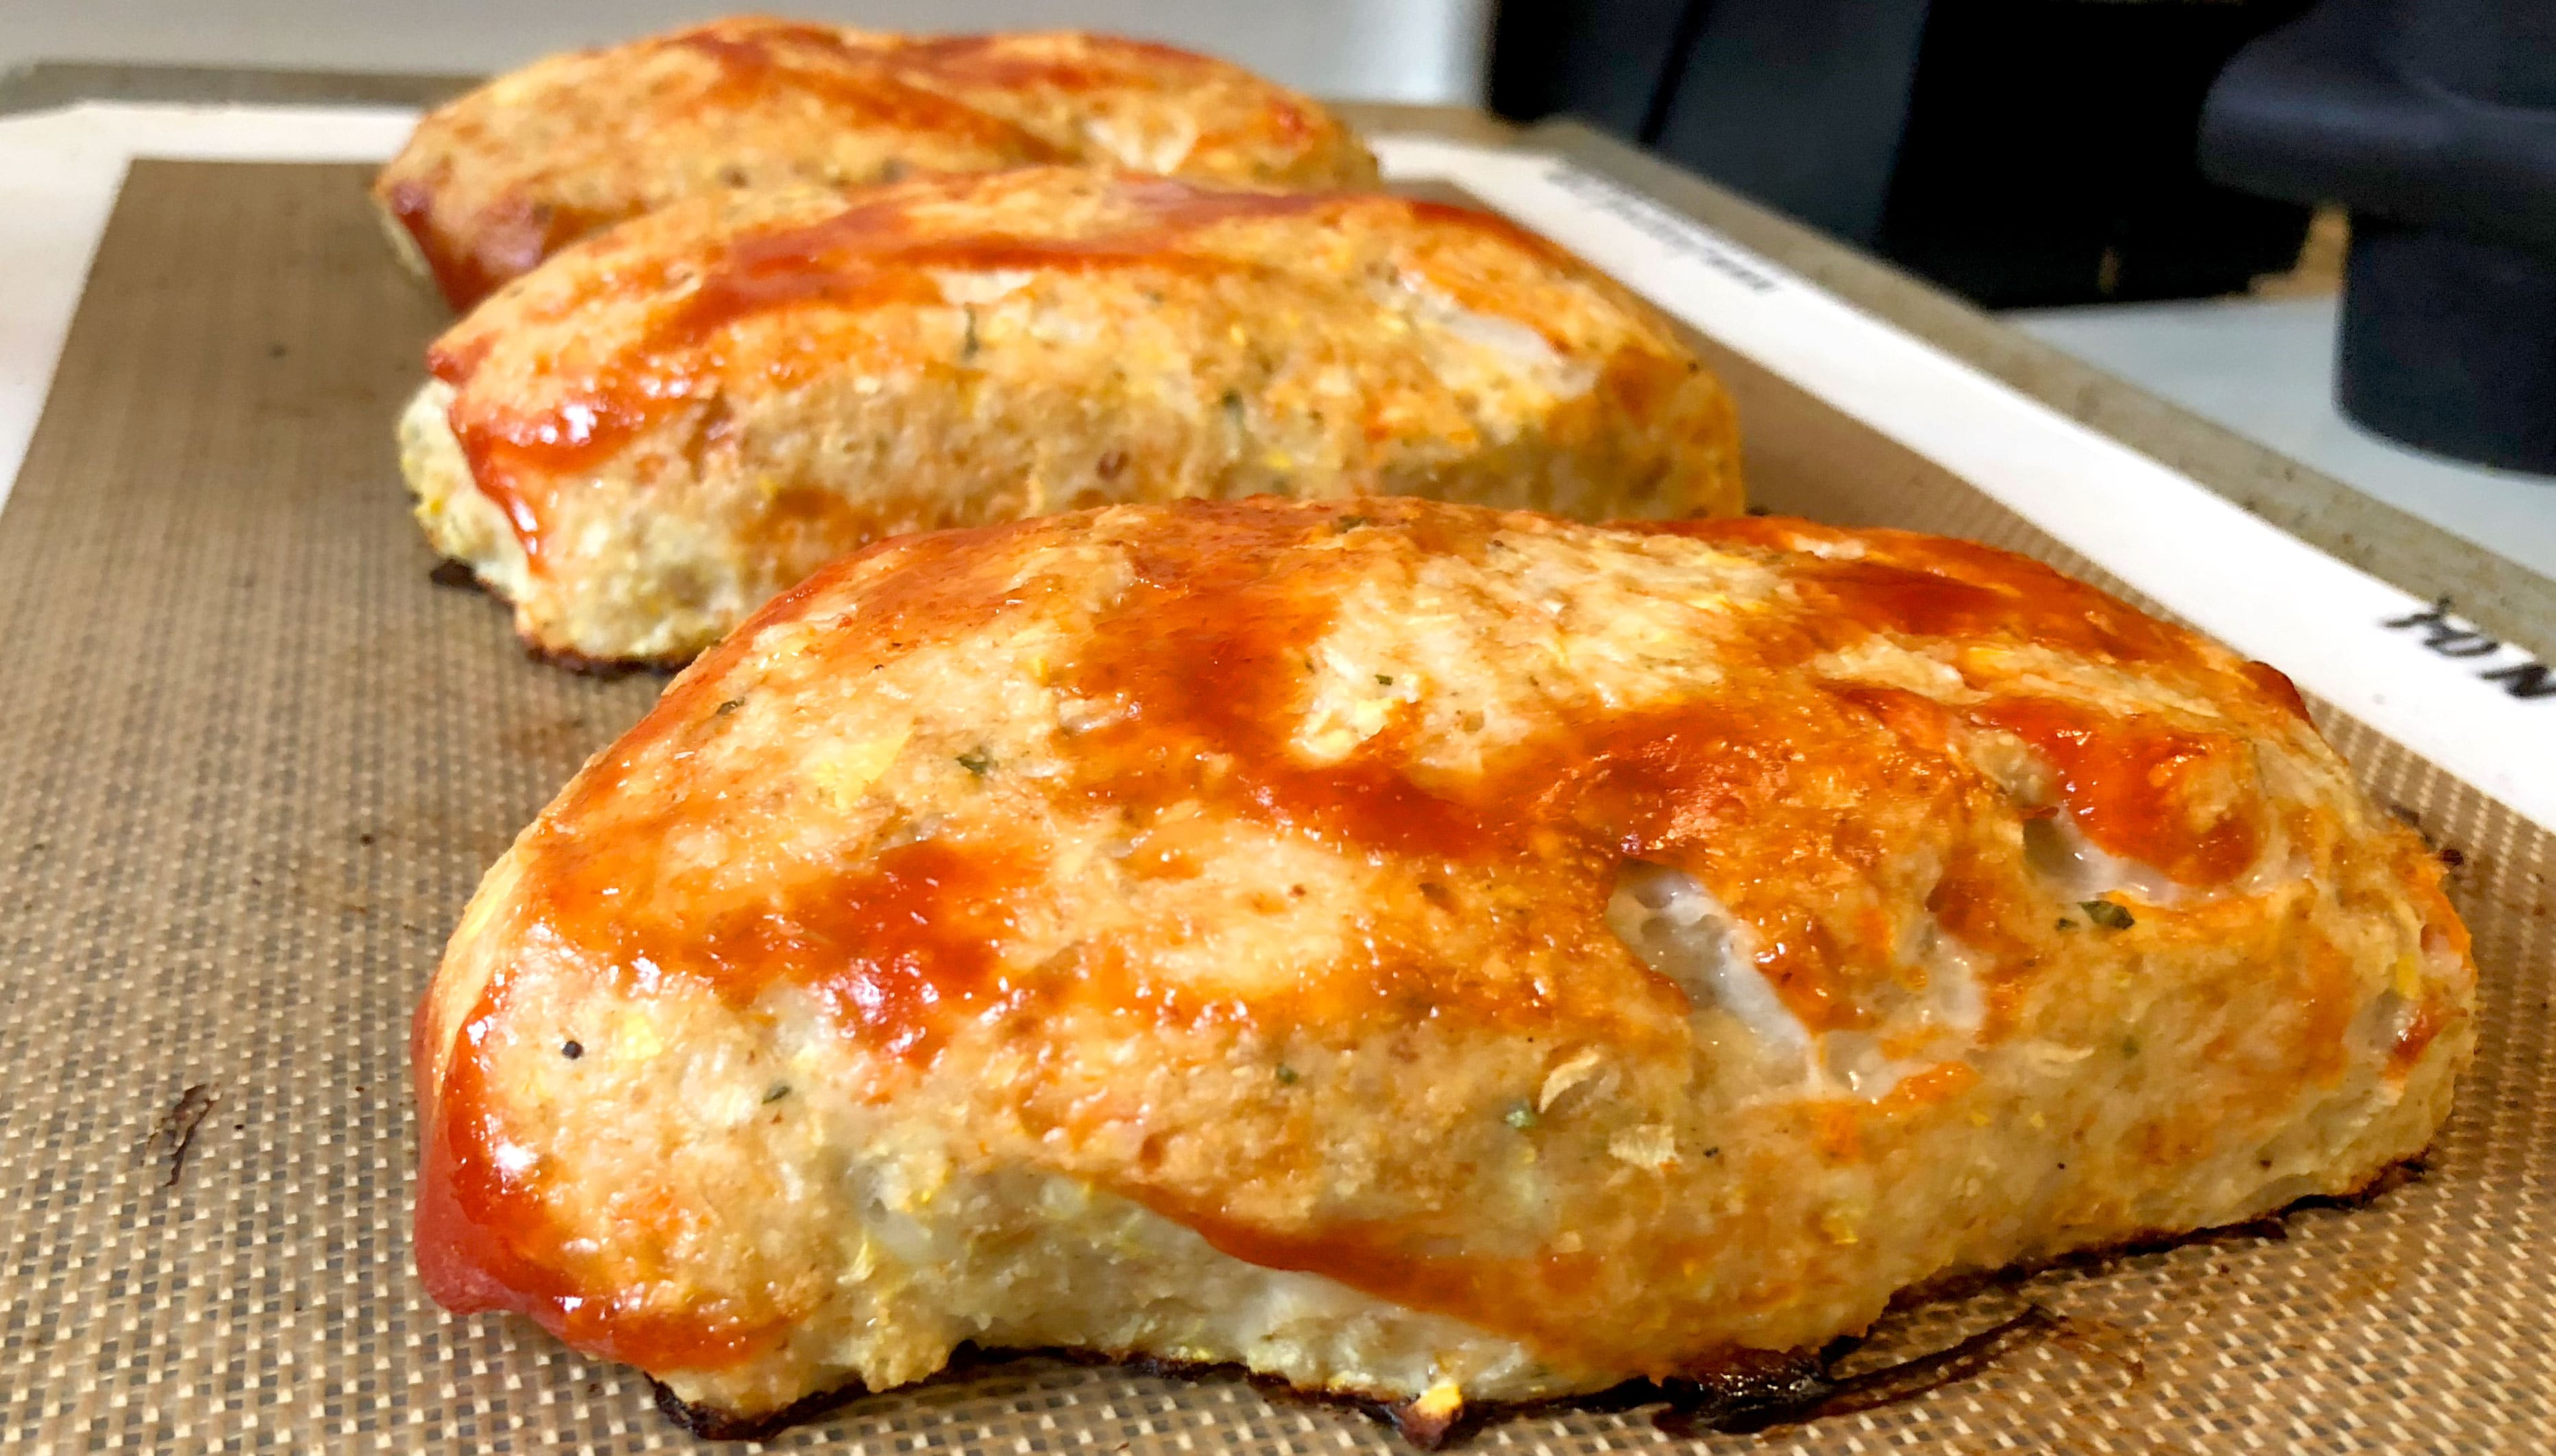 Chicken Meatloaf Recipe Loaded With Veggies